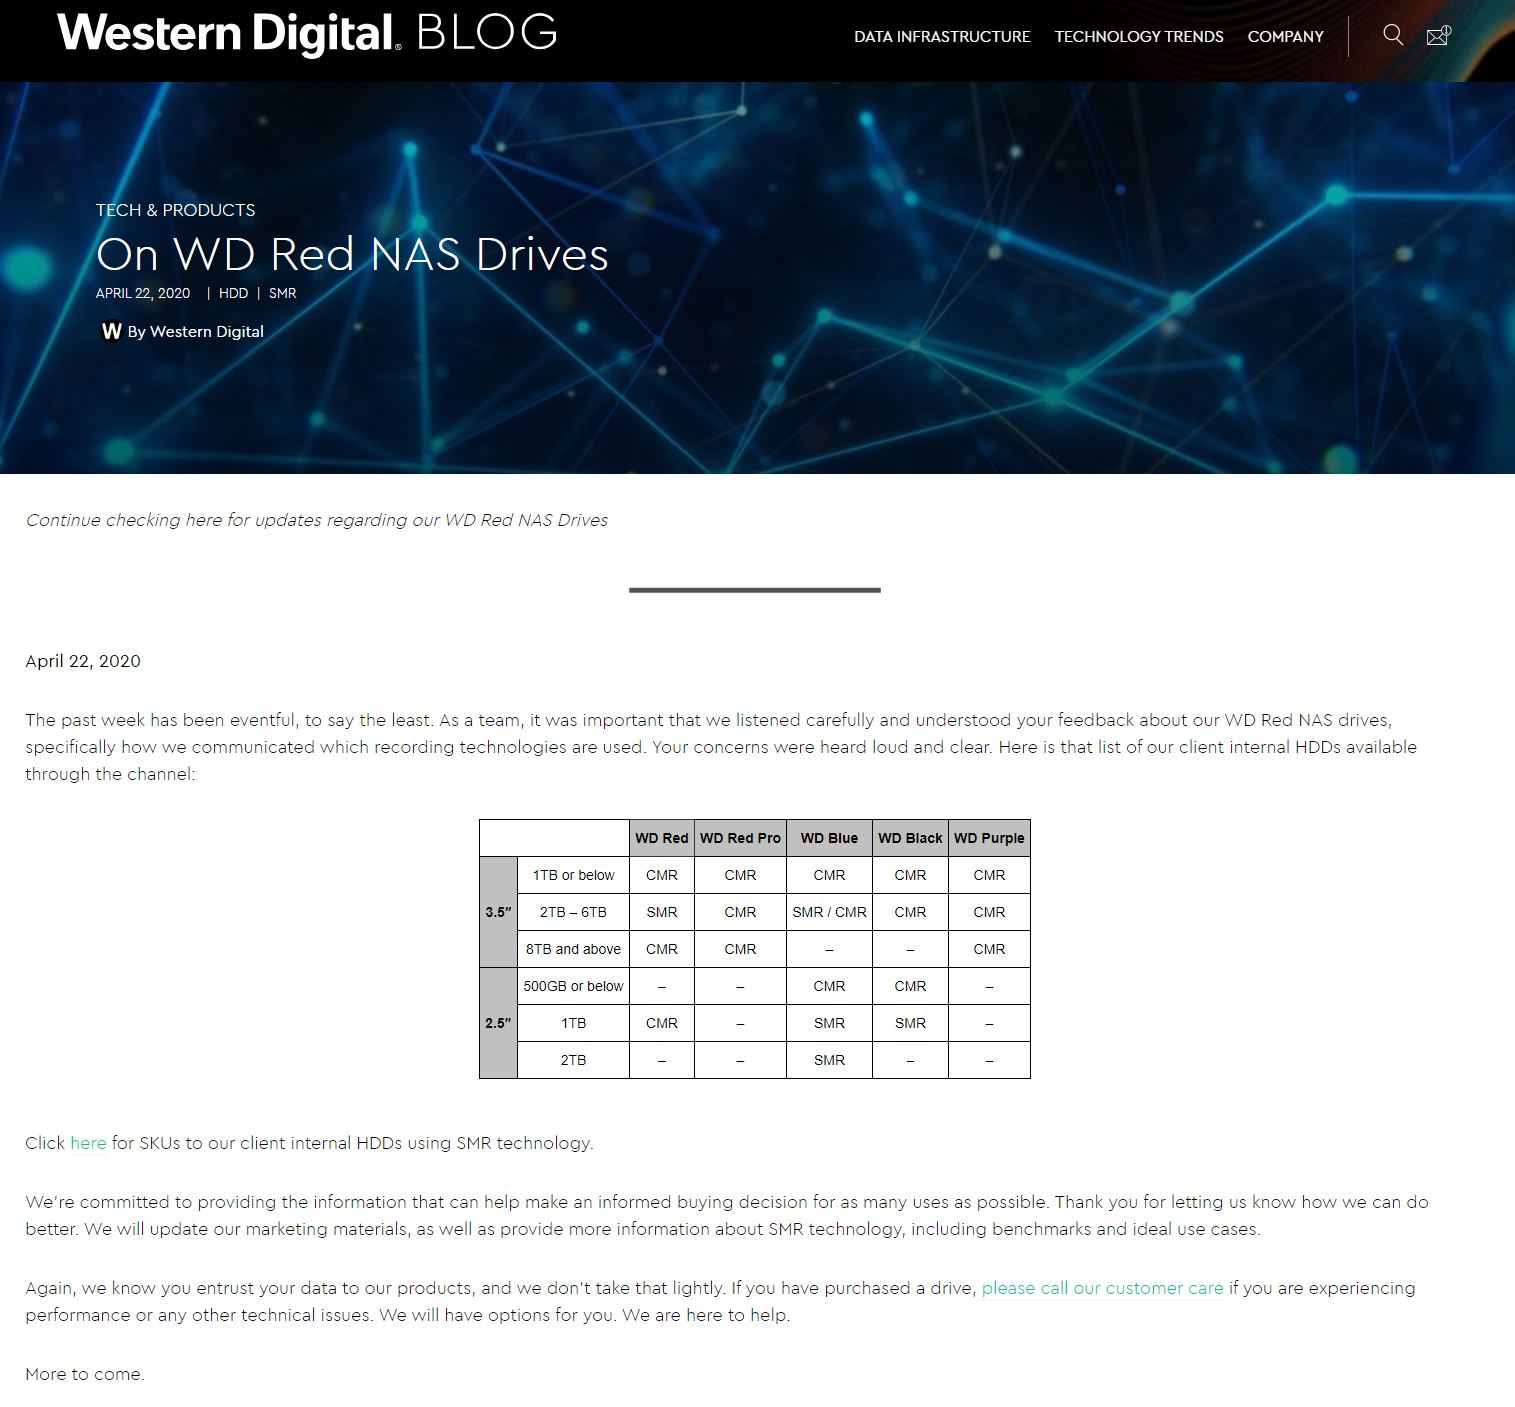 On WD Red NAS Drives Statement April 22 2020 By Western Digital